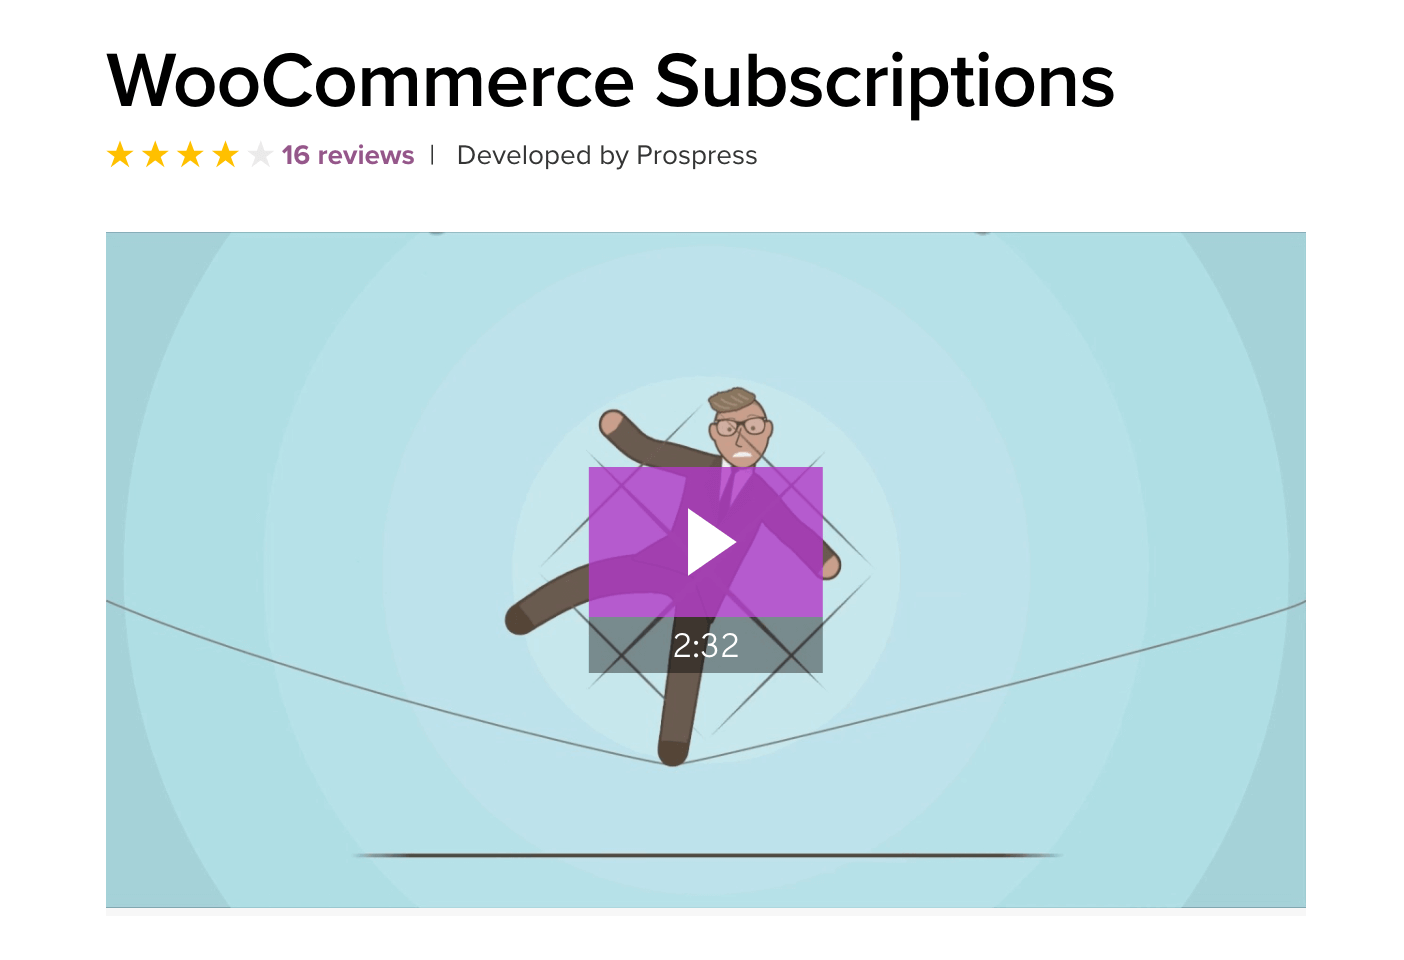 L'estensione WooCommerce Subscriptions